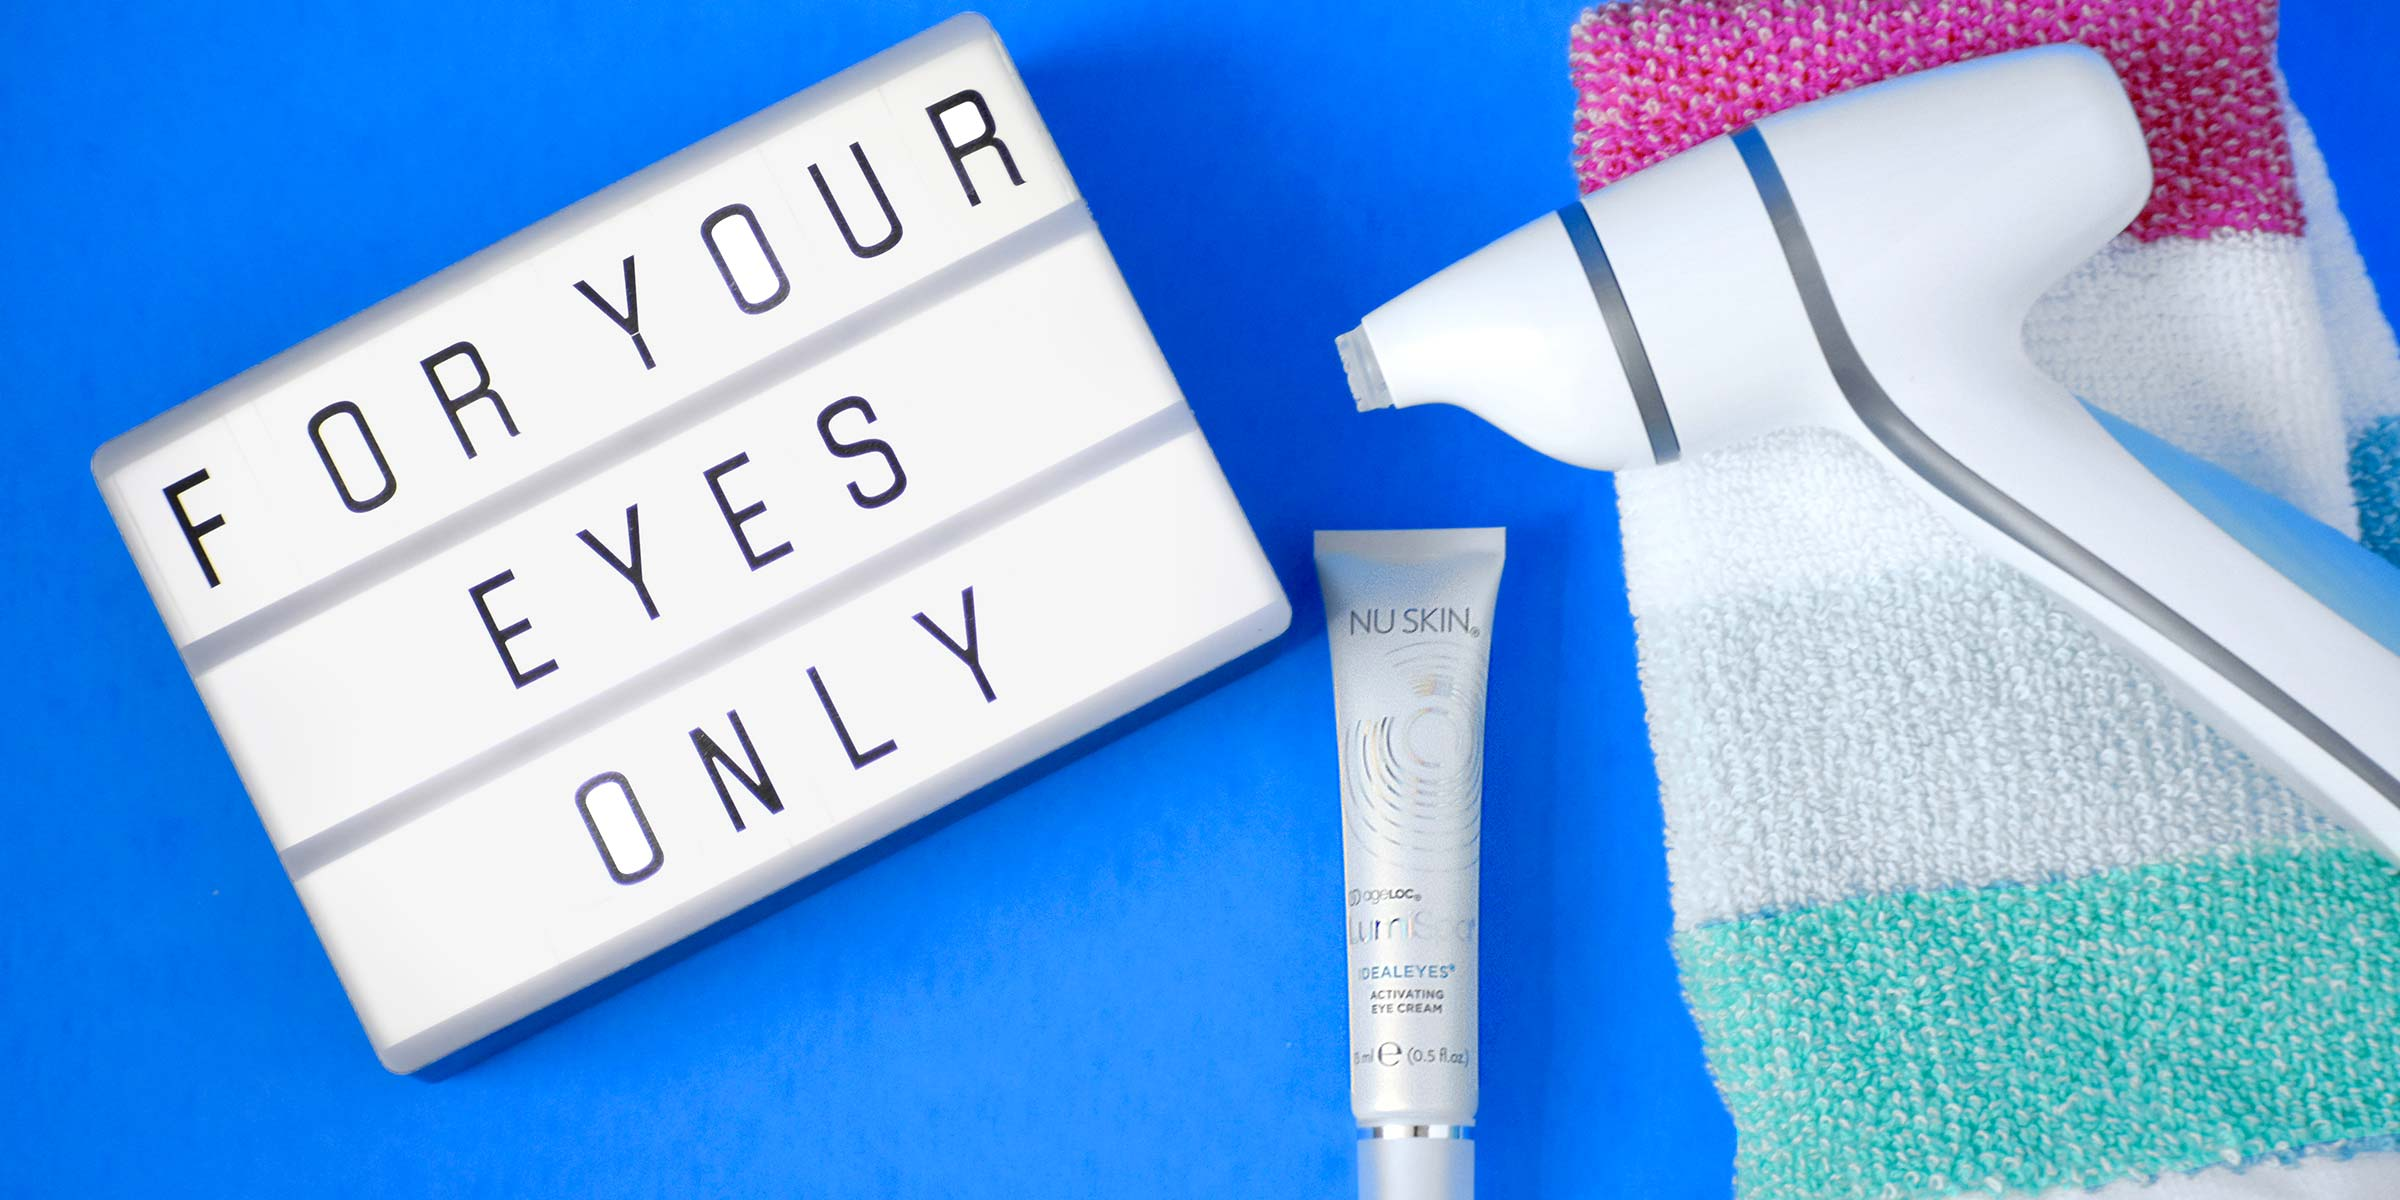 Photo of ageLOC LumiSpa Accent & IdealEyes besides a lightbox with text: For Your Eyes only